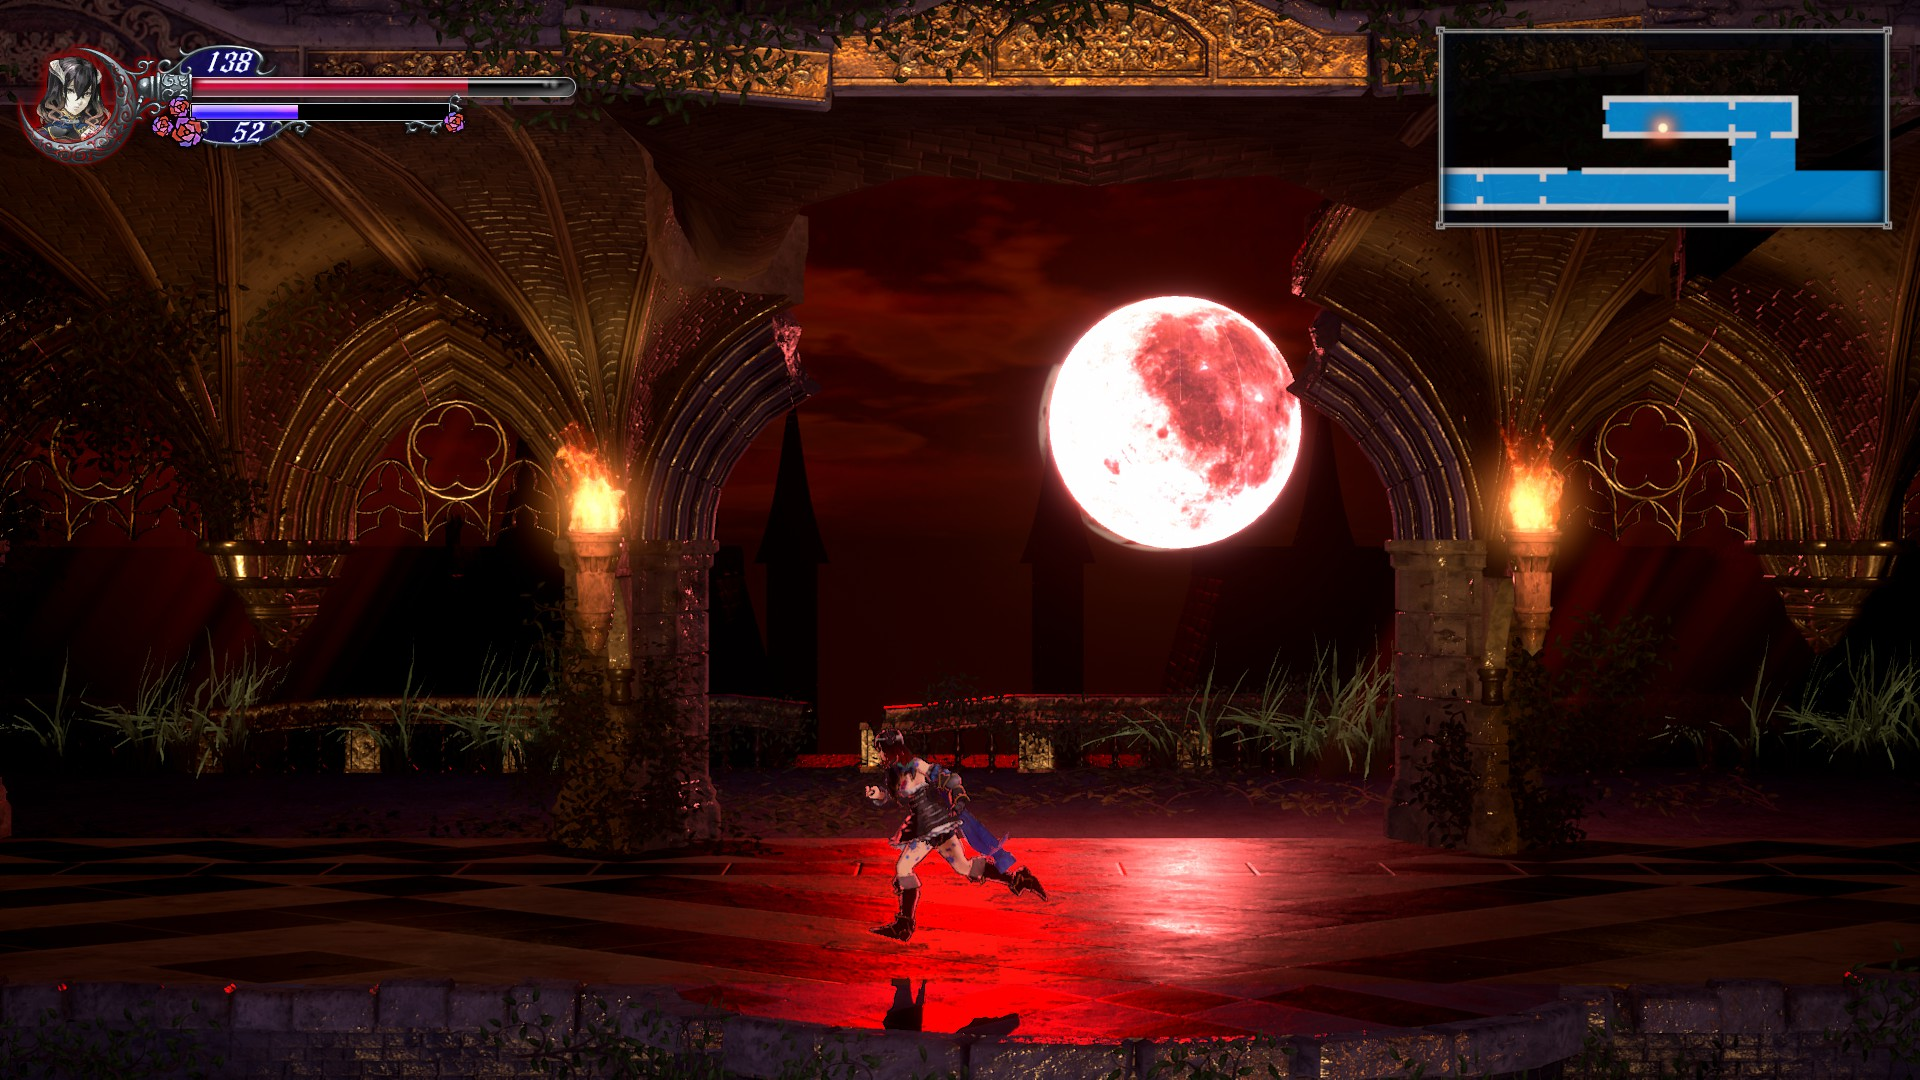 Castlevania spiritual successor hits this summer